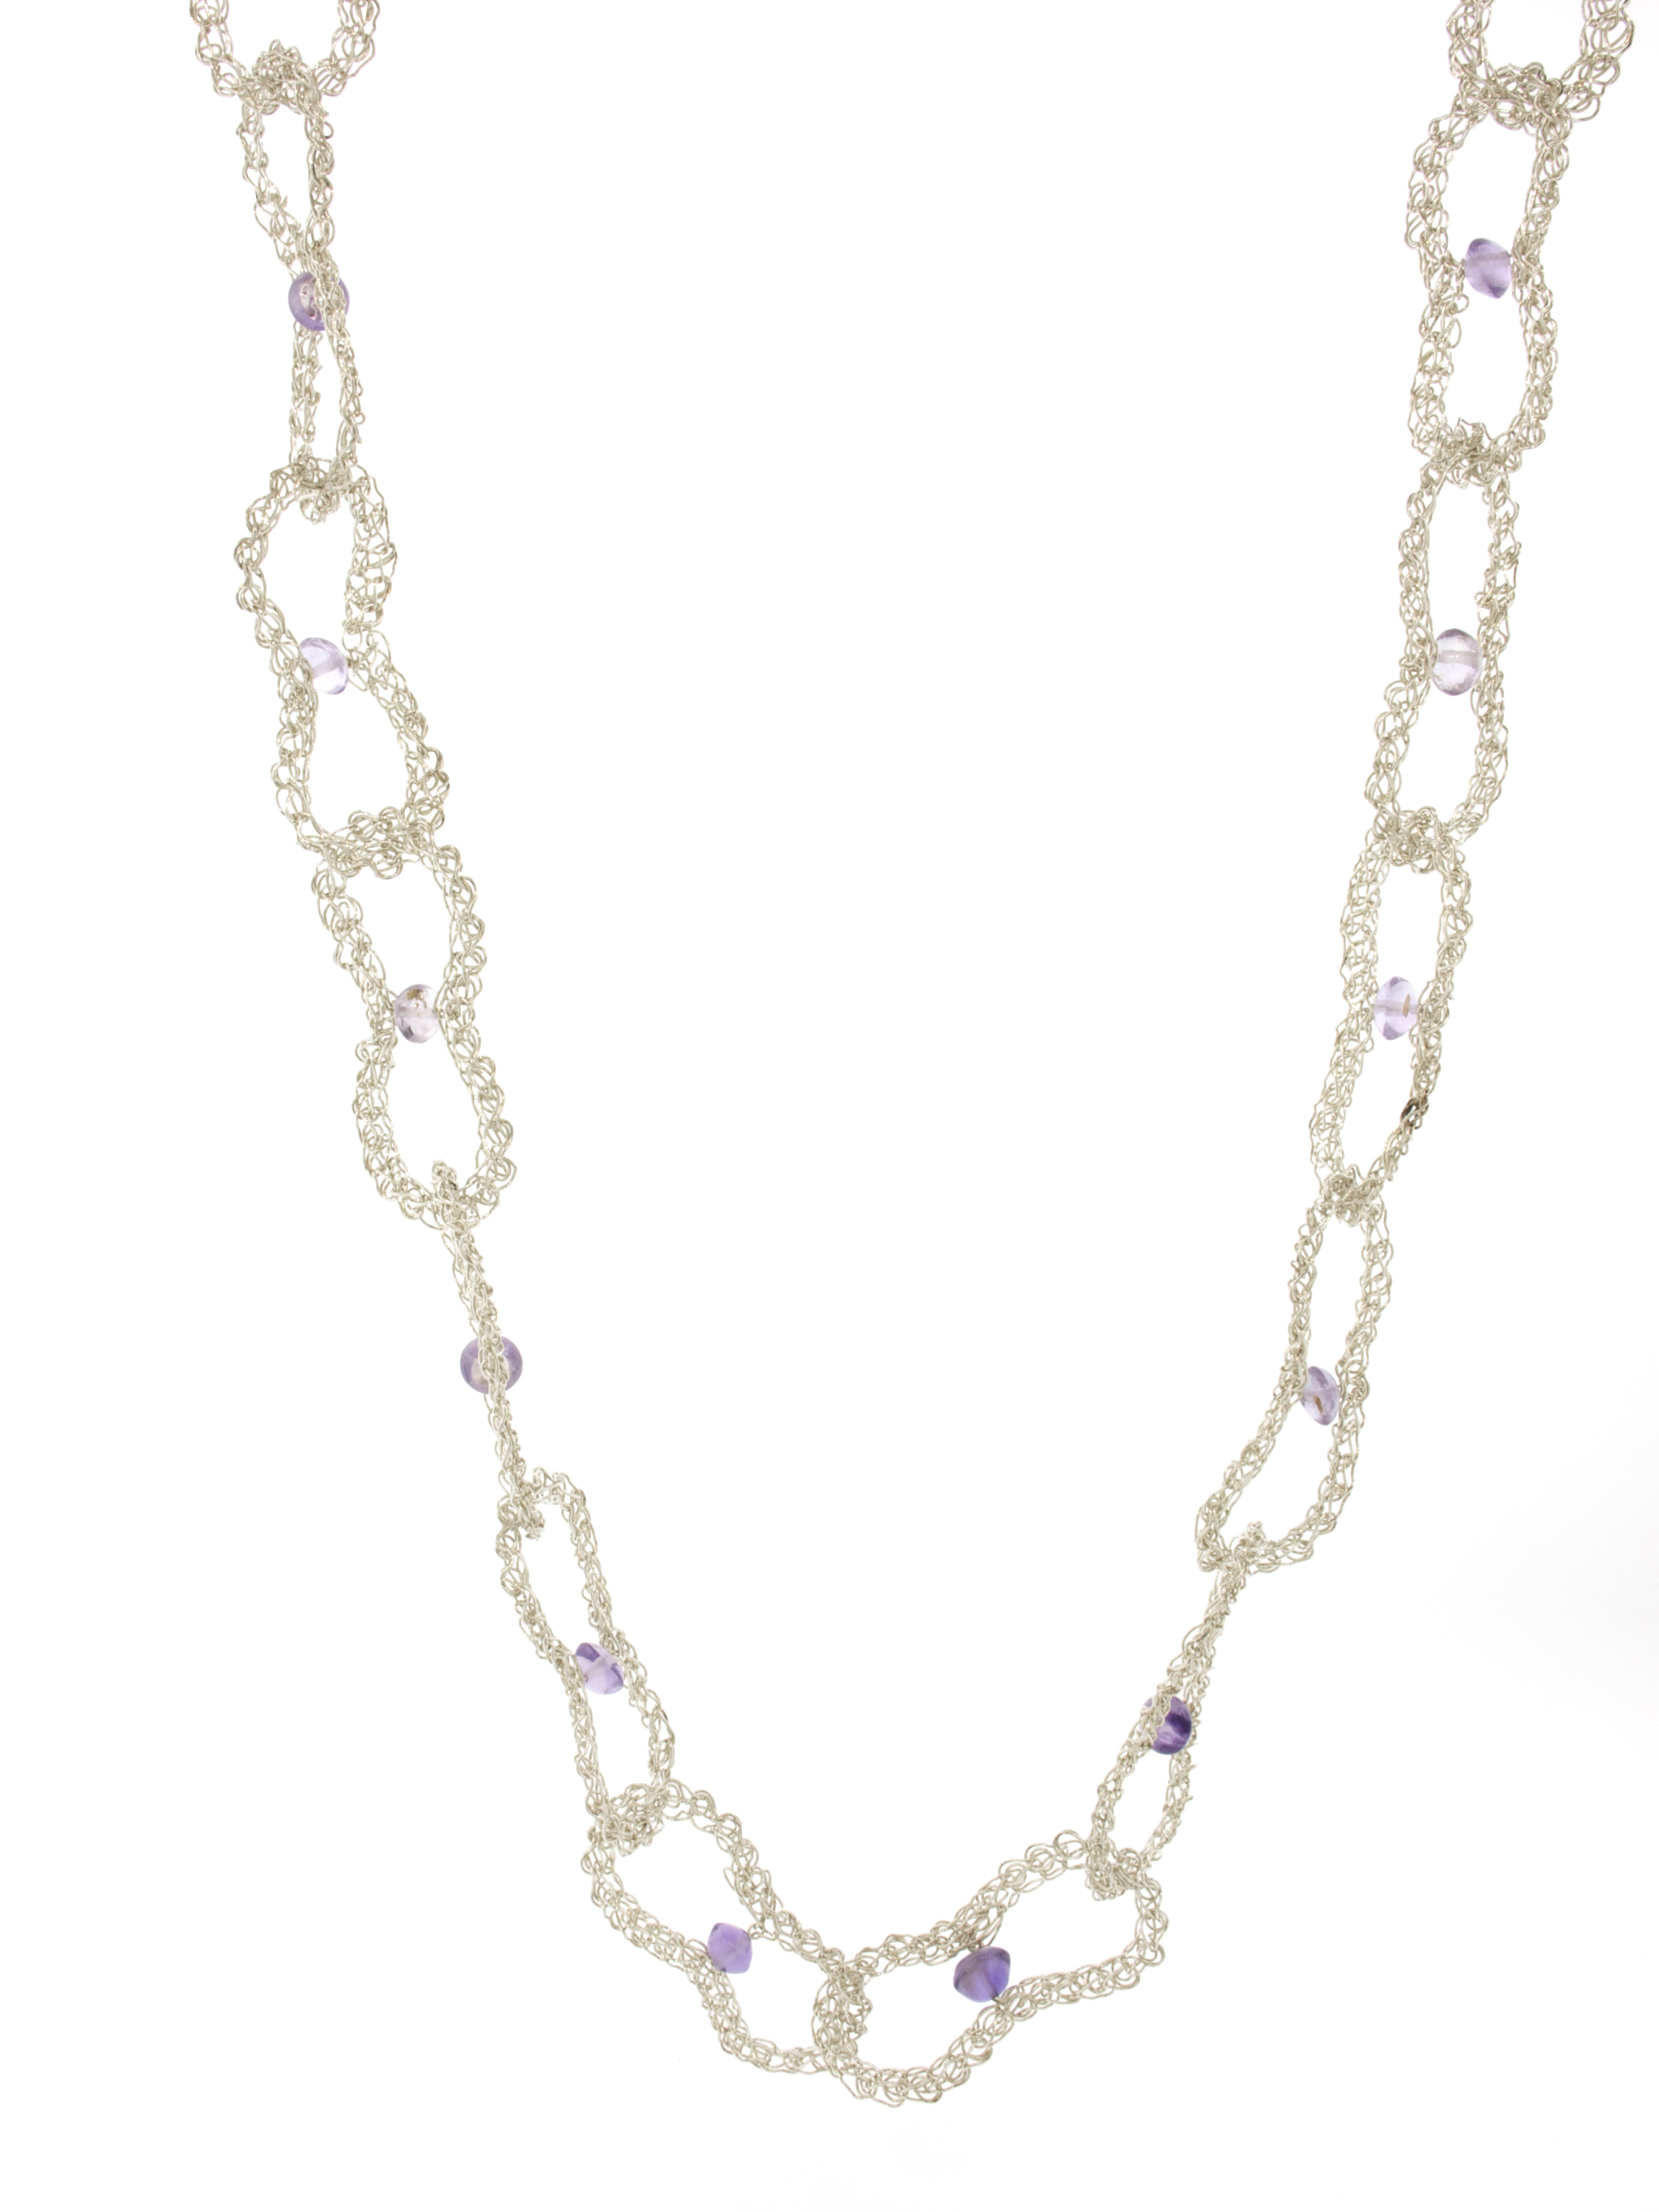 collier | necklace amethyst links